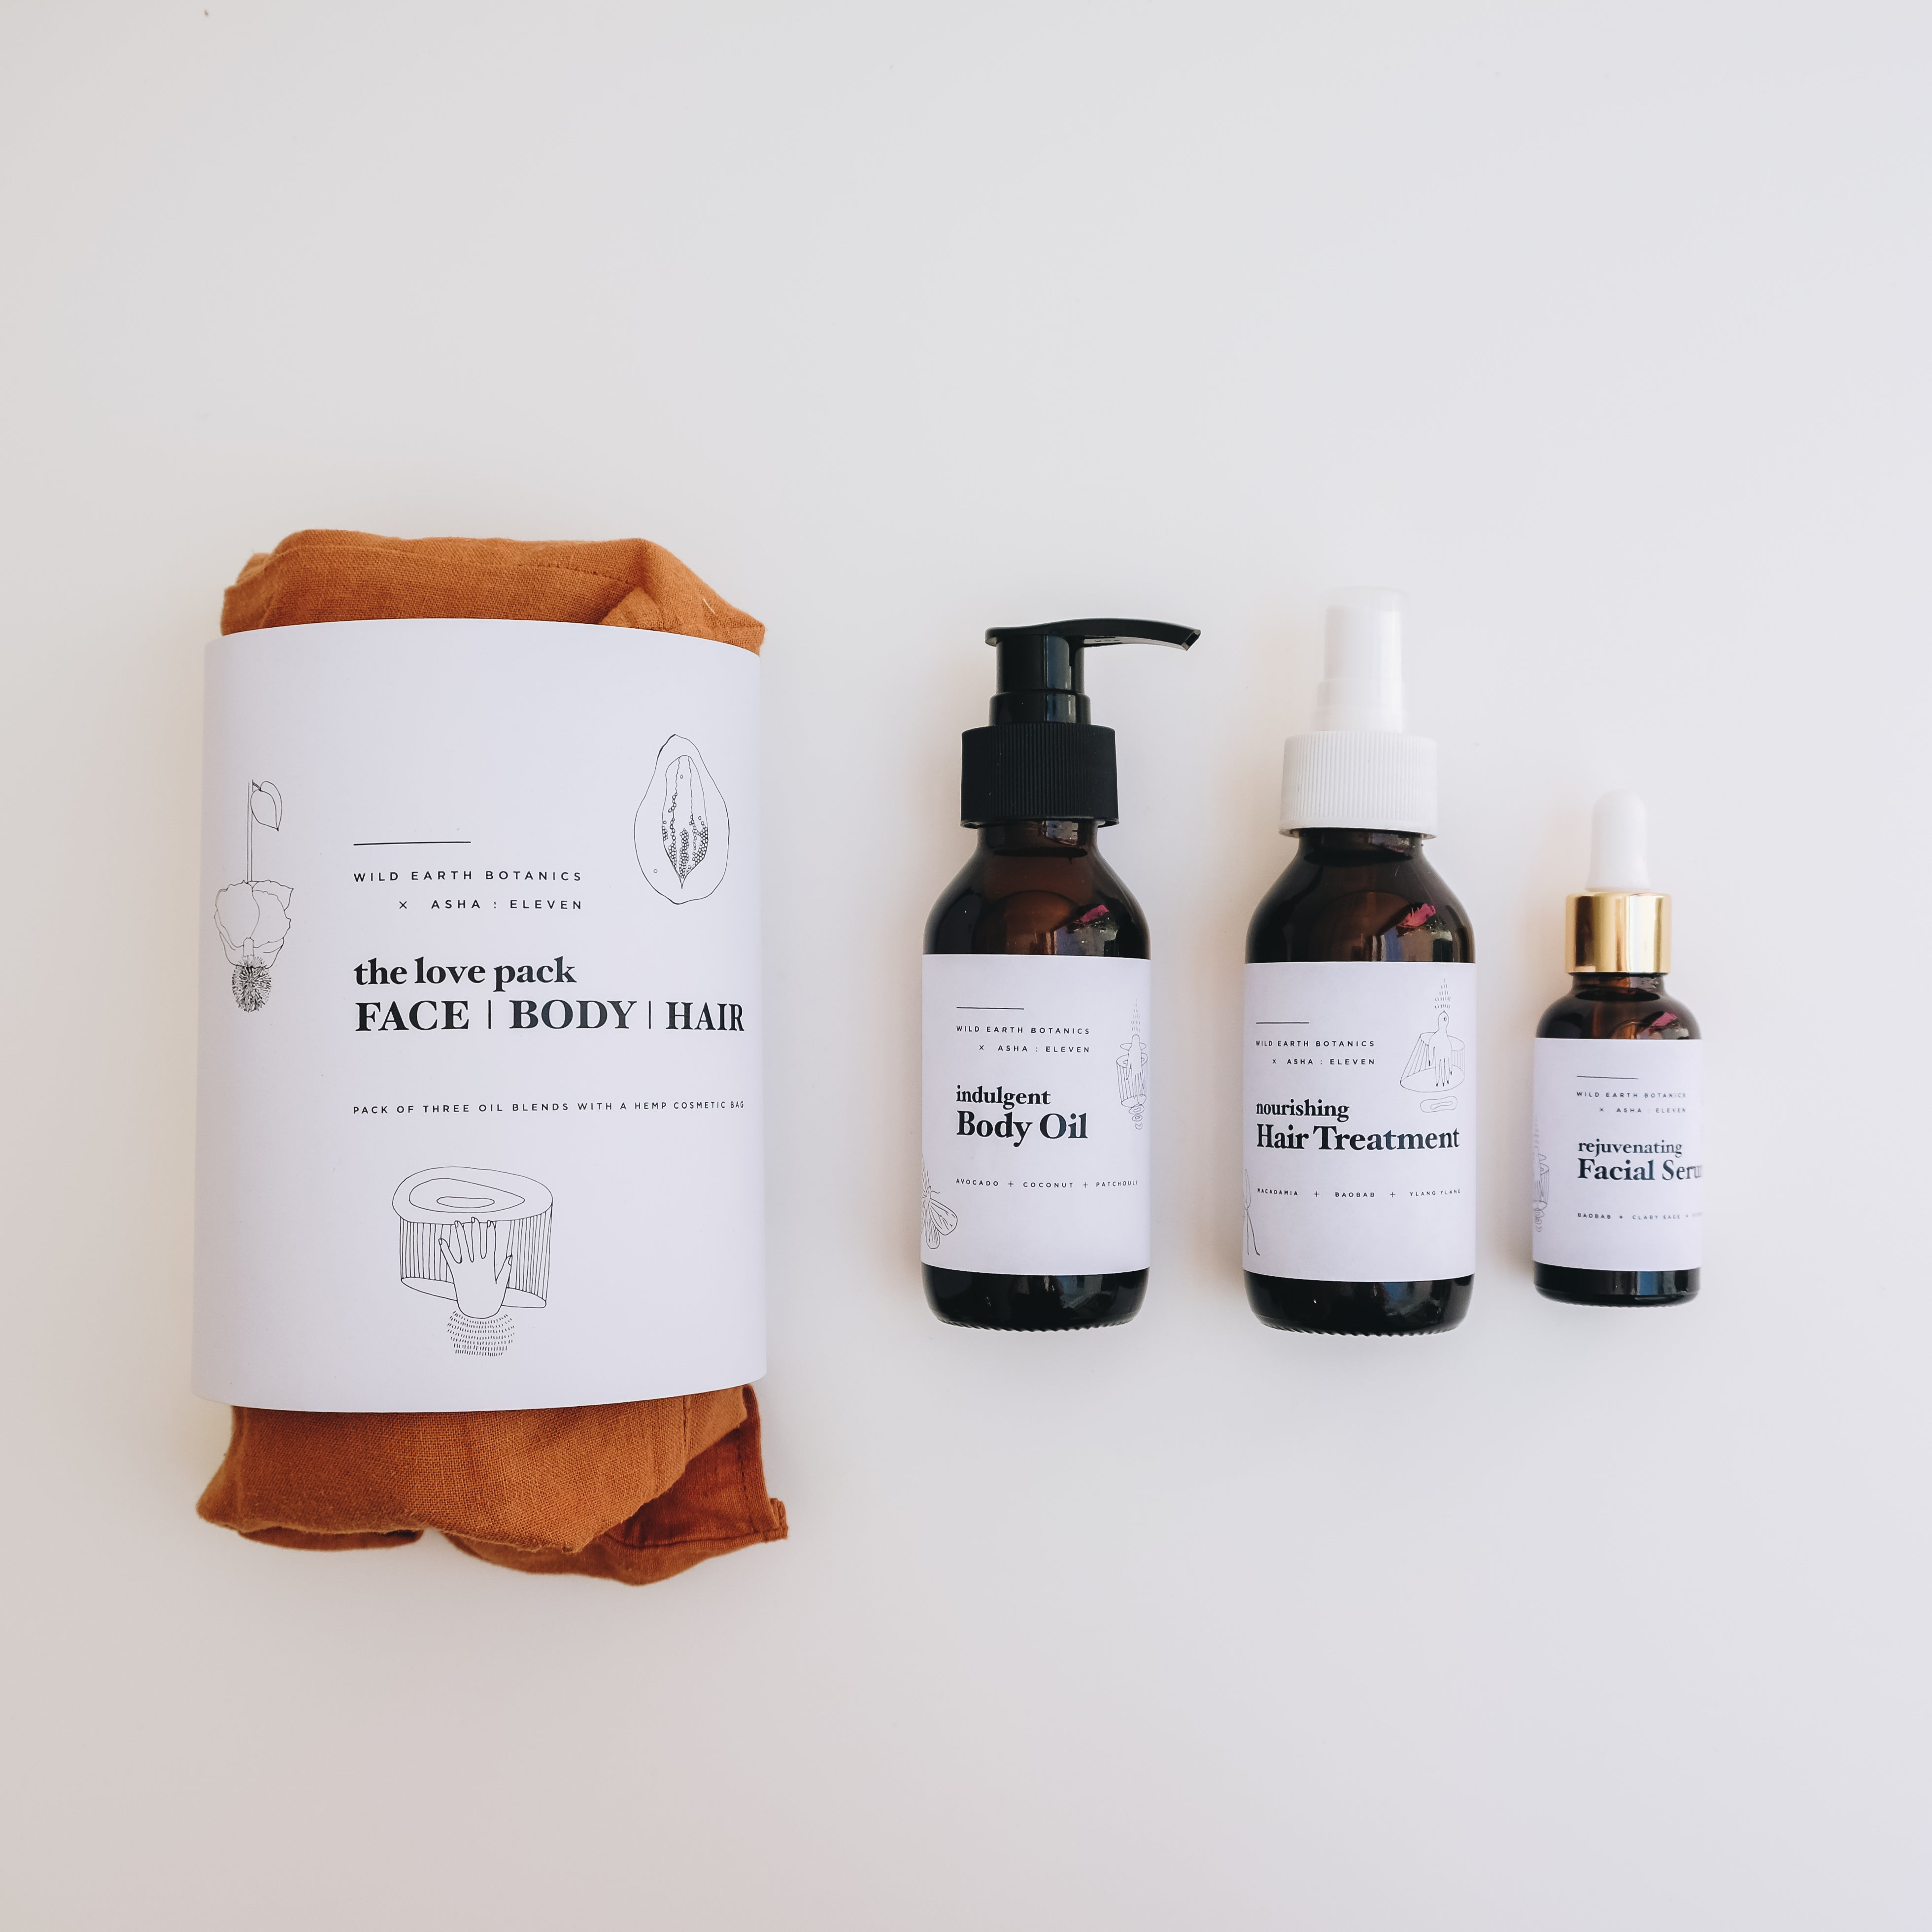 X Wild Earth Botanics | The Love Pack